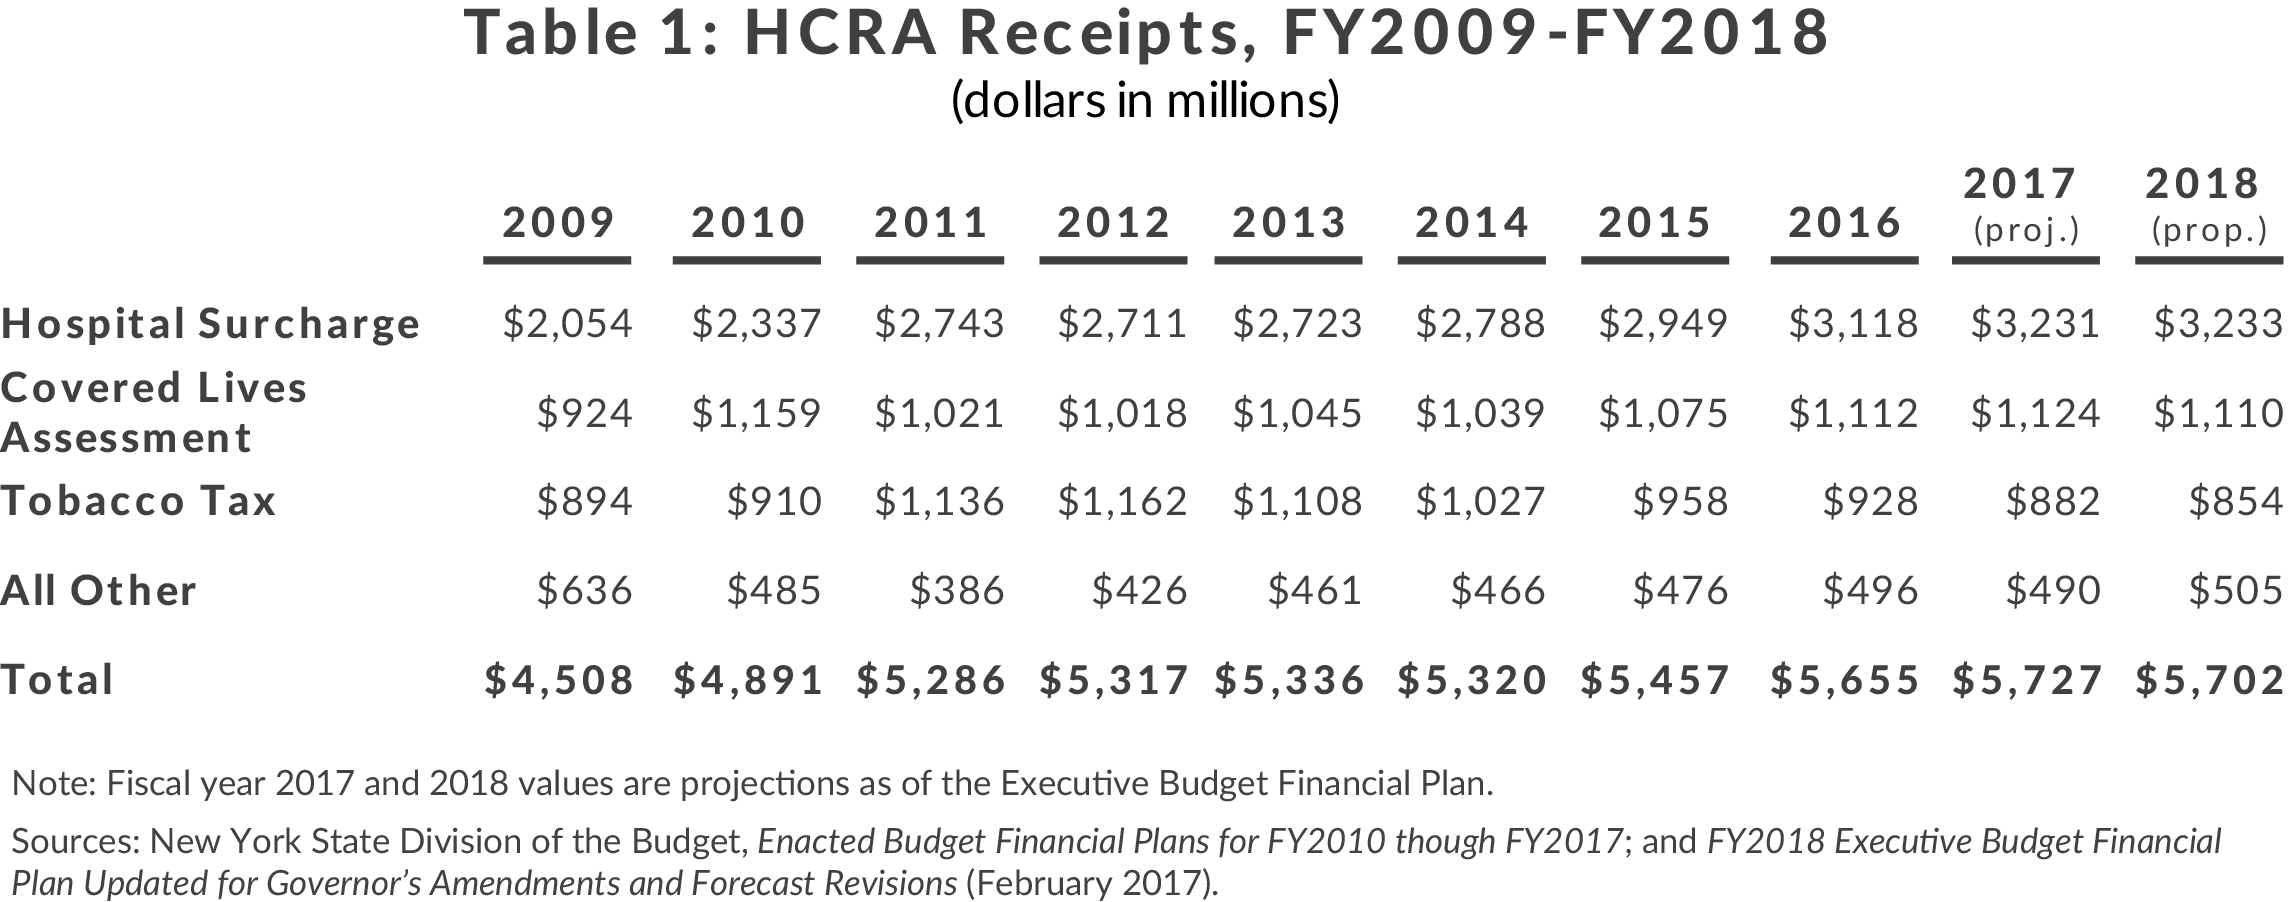 Table 1: HCRA Receipts, FY2009-FY2018